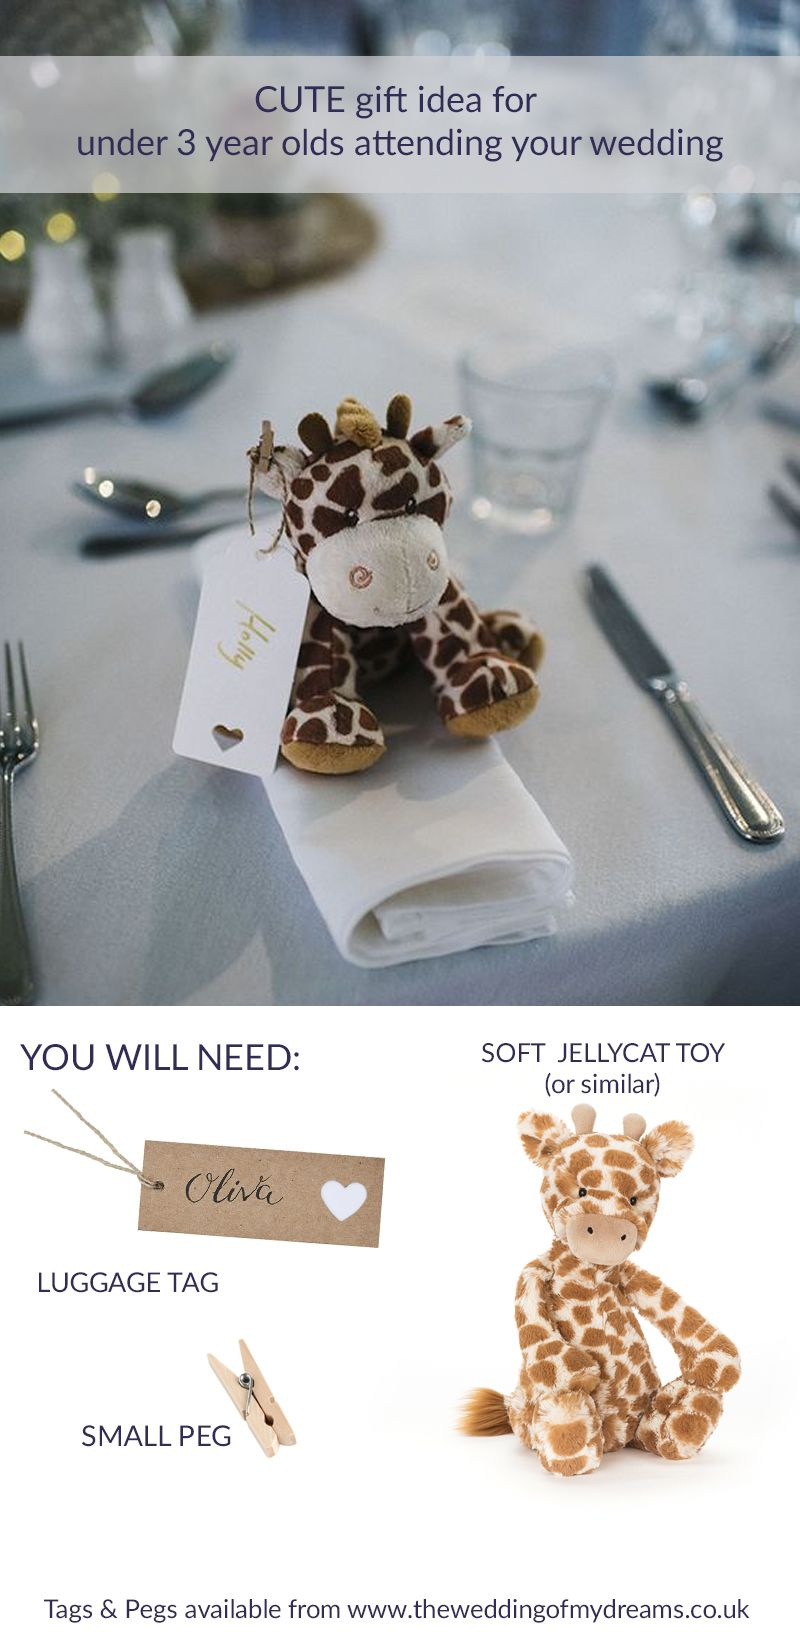 Wedding Gifts For Babies Under 3 Years Old Wedding Gifts Wedding Toddler Gifts